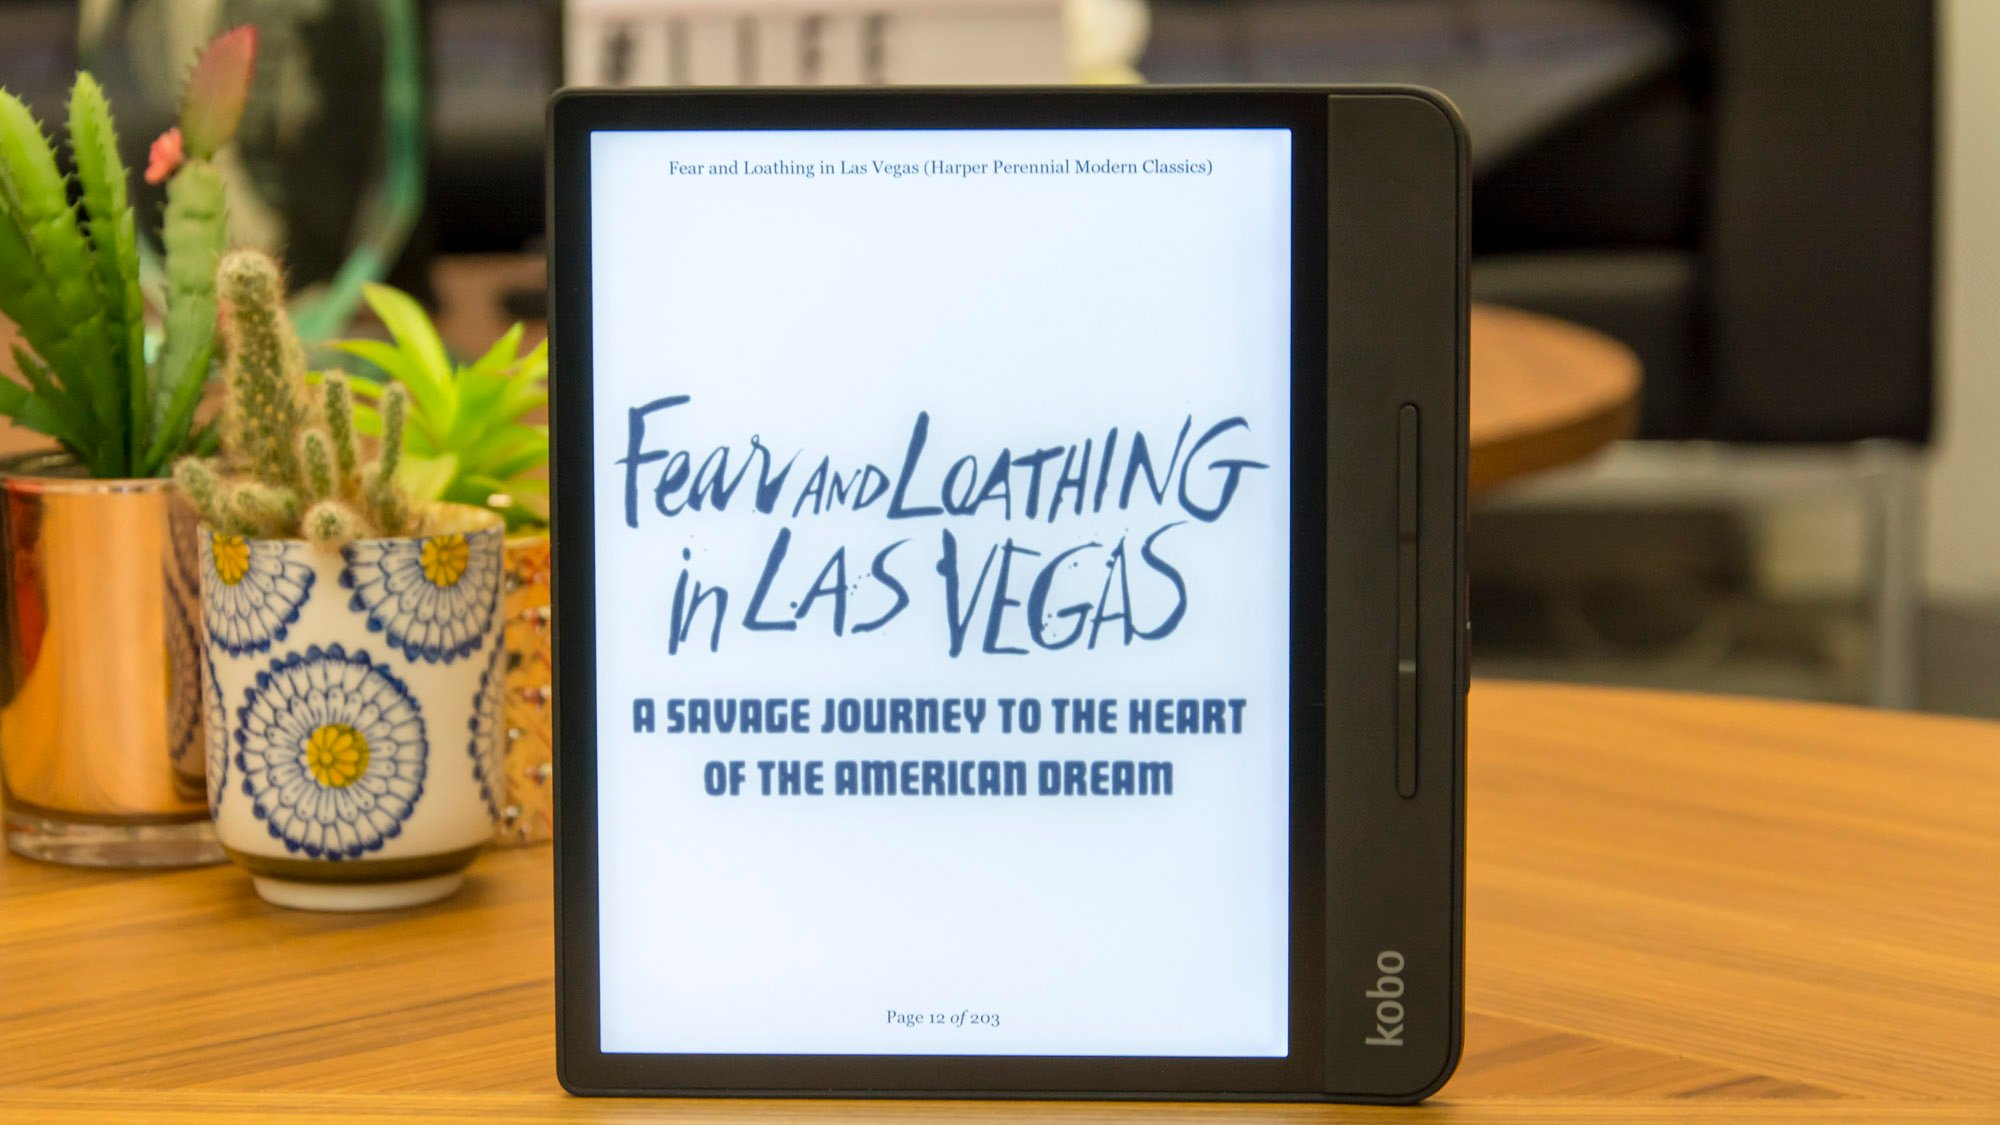 Kobo Forma review: Can it topple Amazon's Kindle kingdom